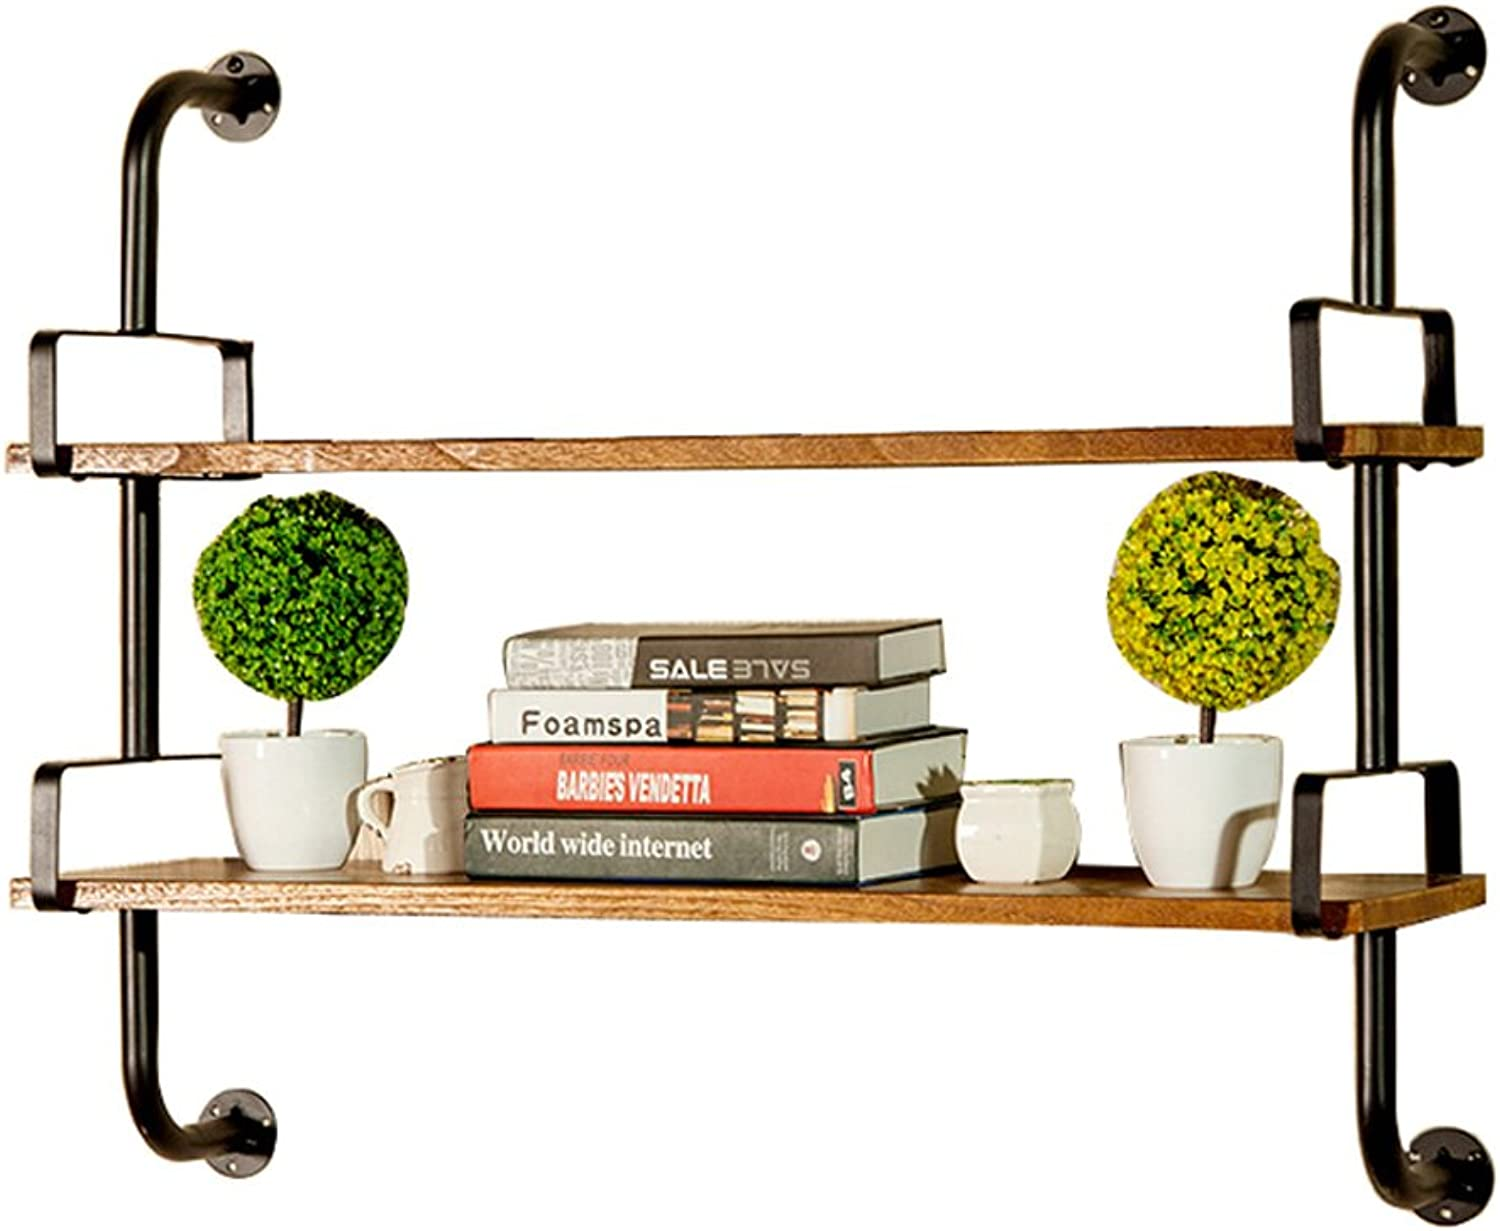 LQQGXL.Storage and Organization Wall-Mounted Iron arm Solid Wood Frame European Style Living Room Shelf Ledge, 1 2 Layer Optional (color   2 Layer, Size   45cm)